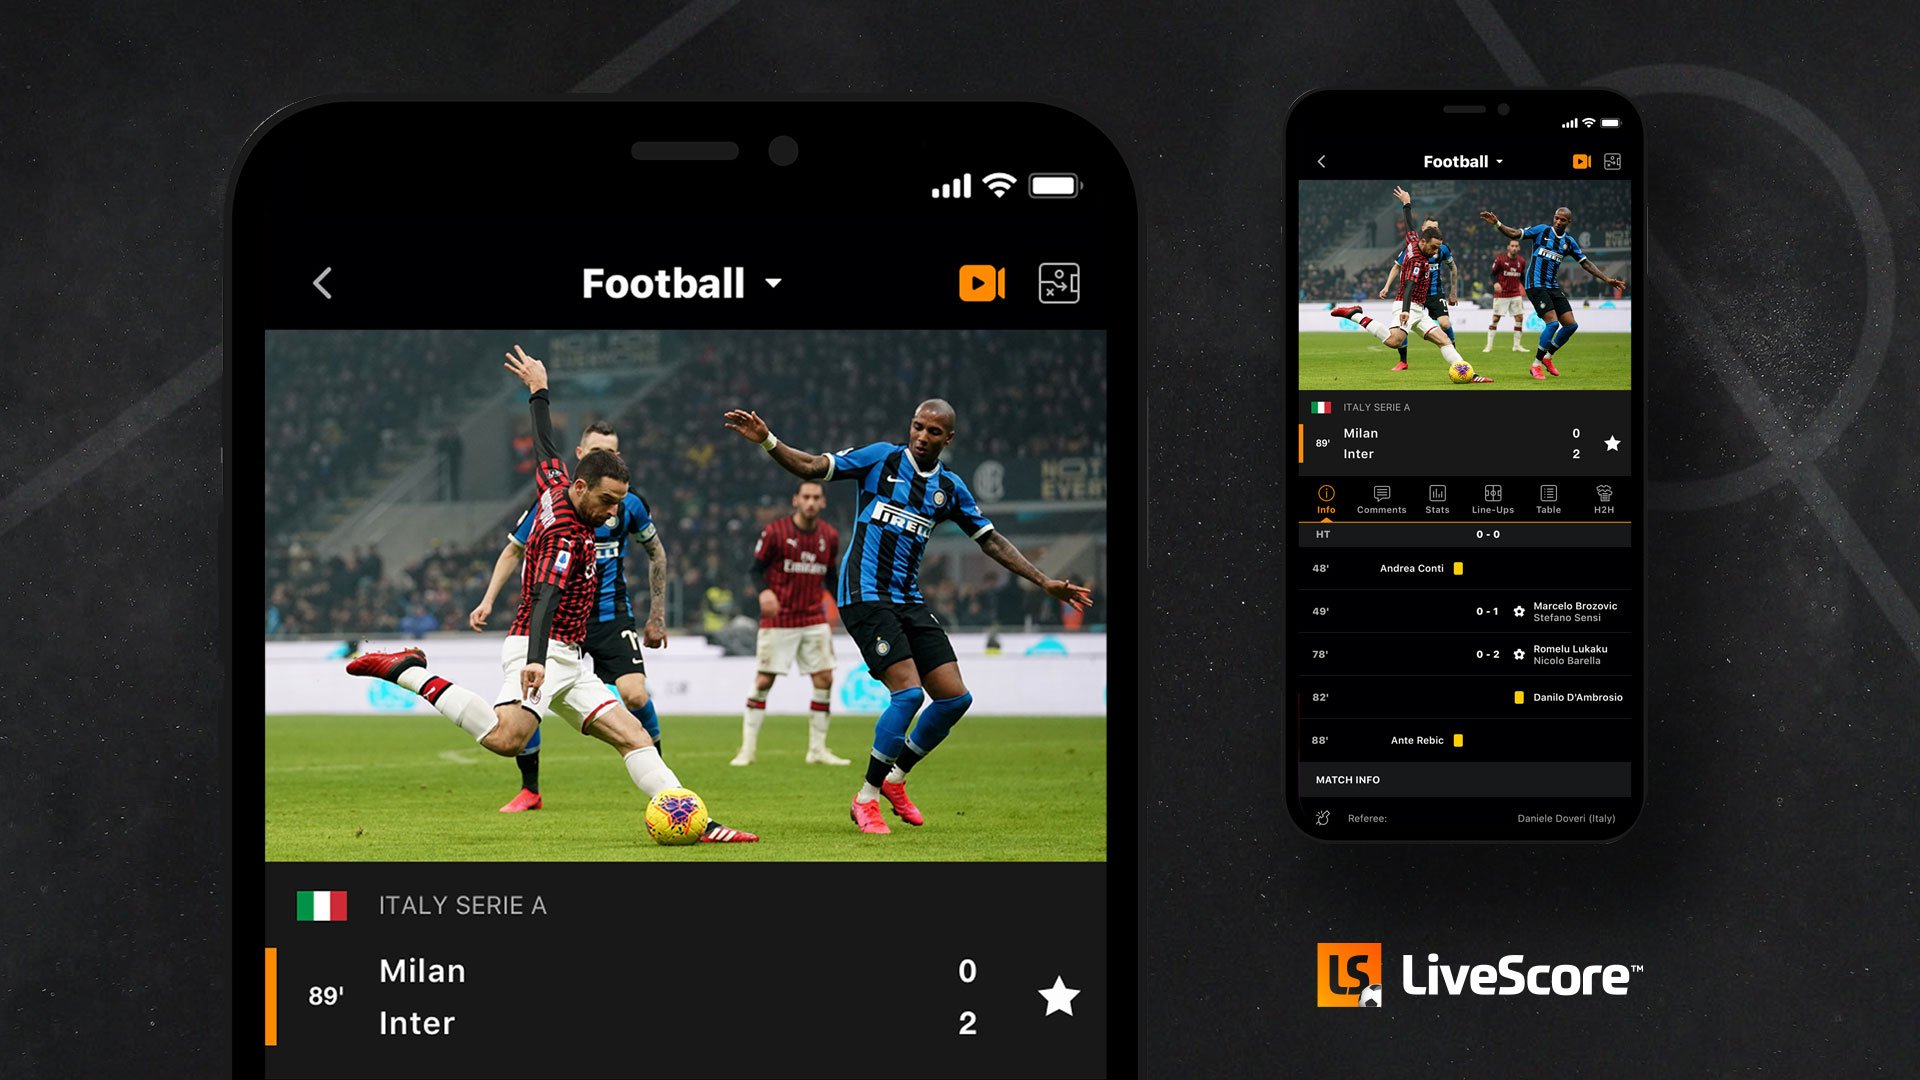 Serie A and the Portuguese Primeira Liga will be available on LiveScore's app